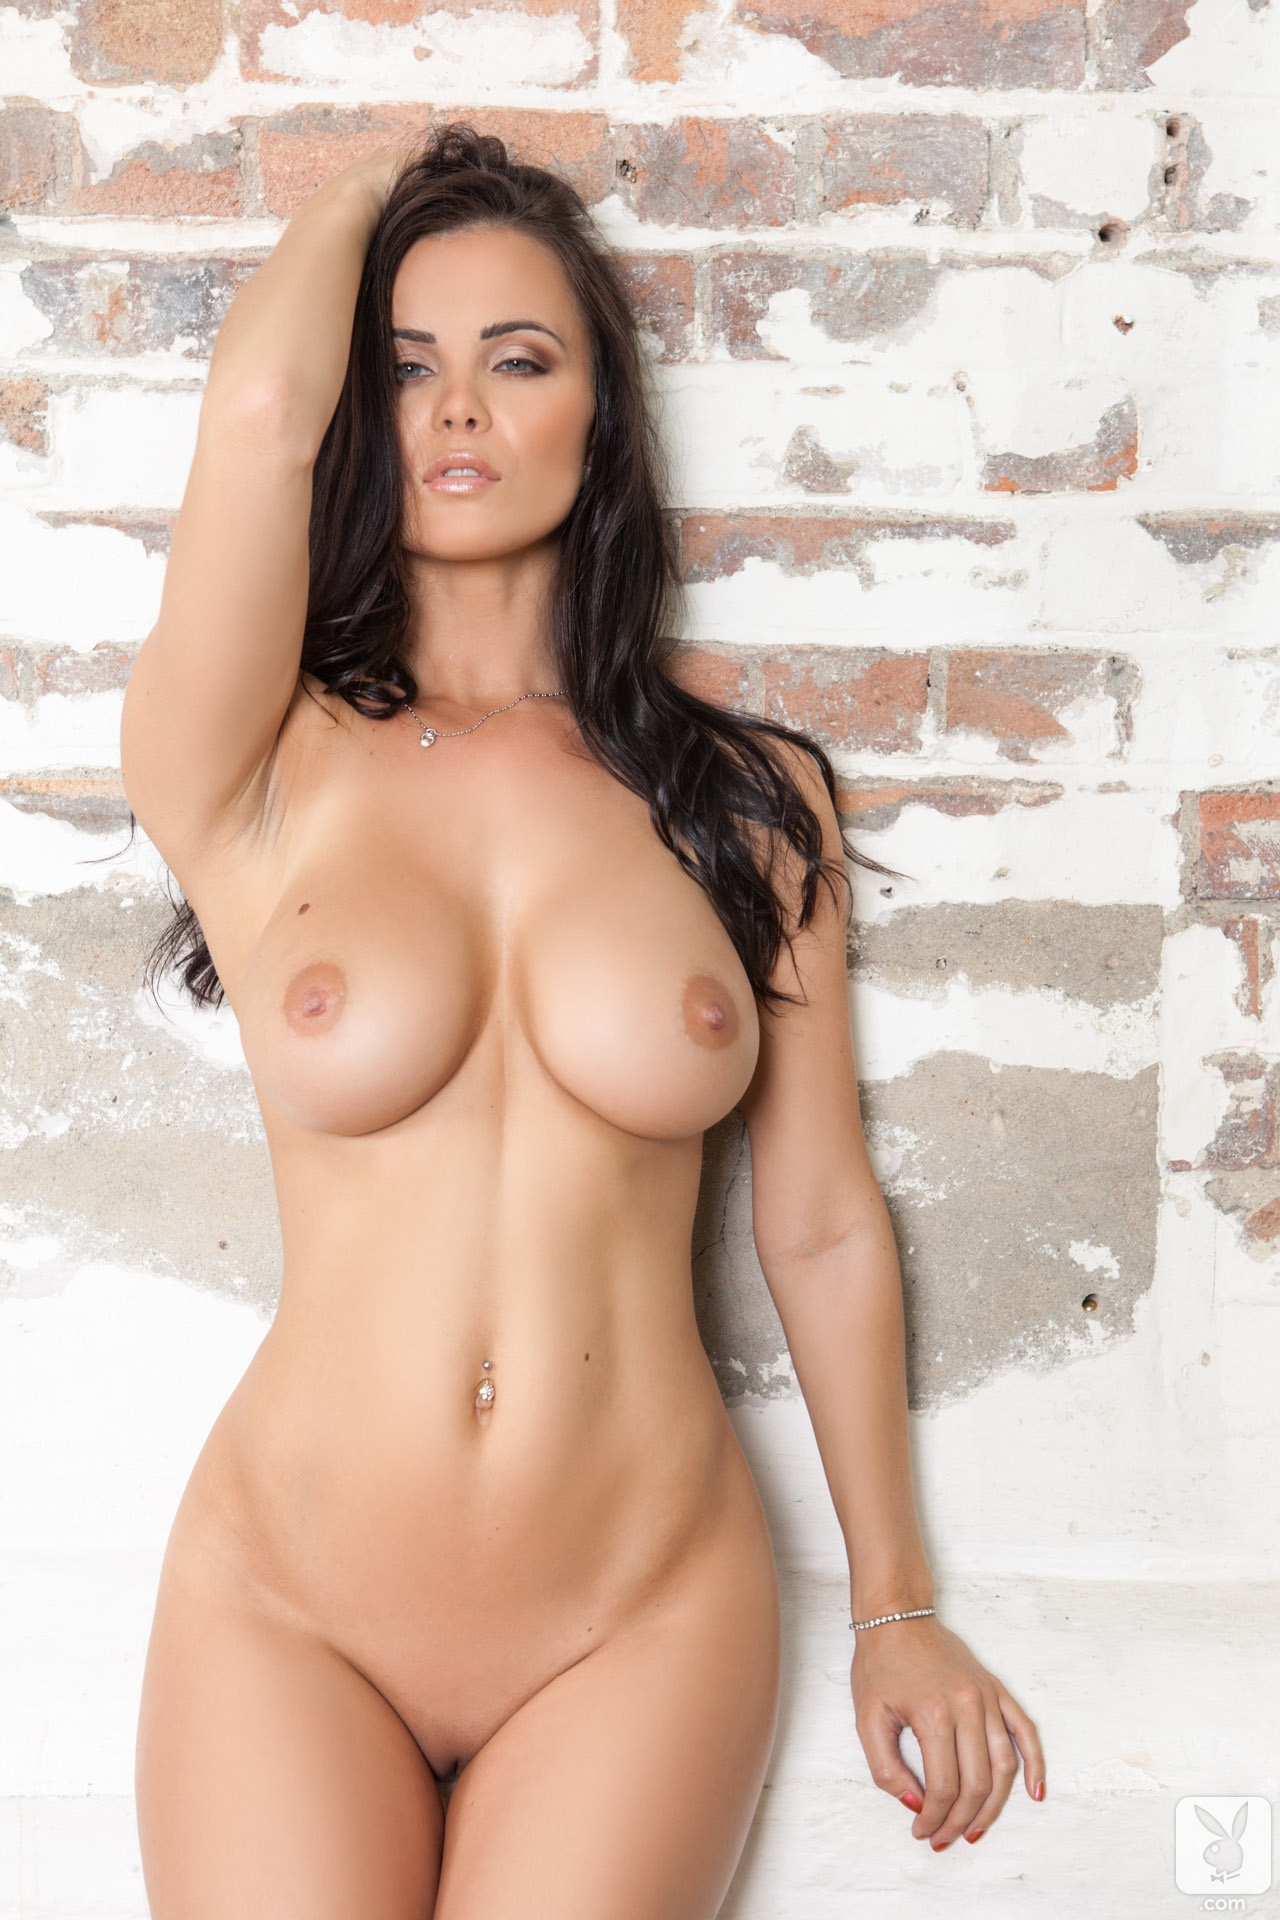 emma glover sex